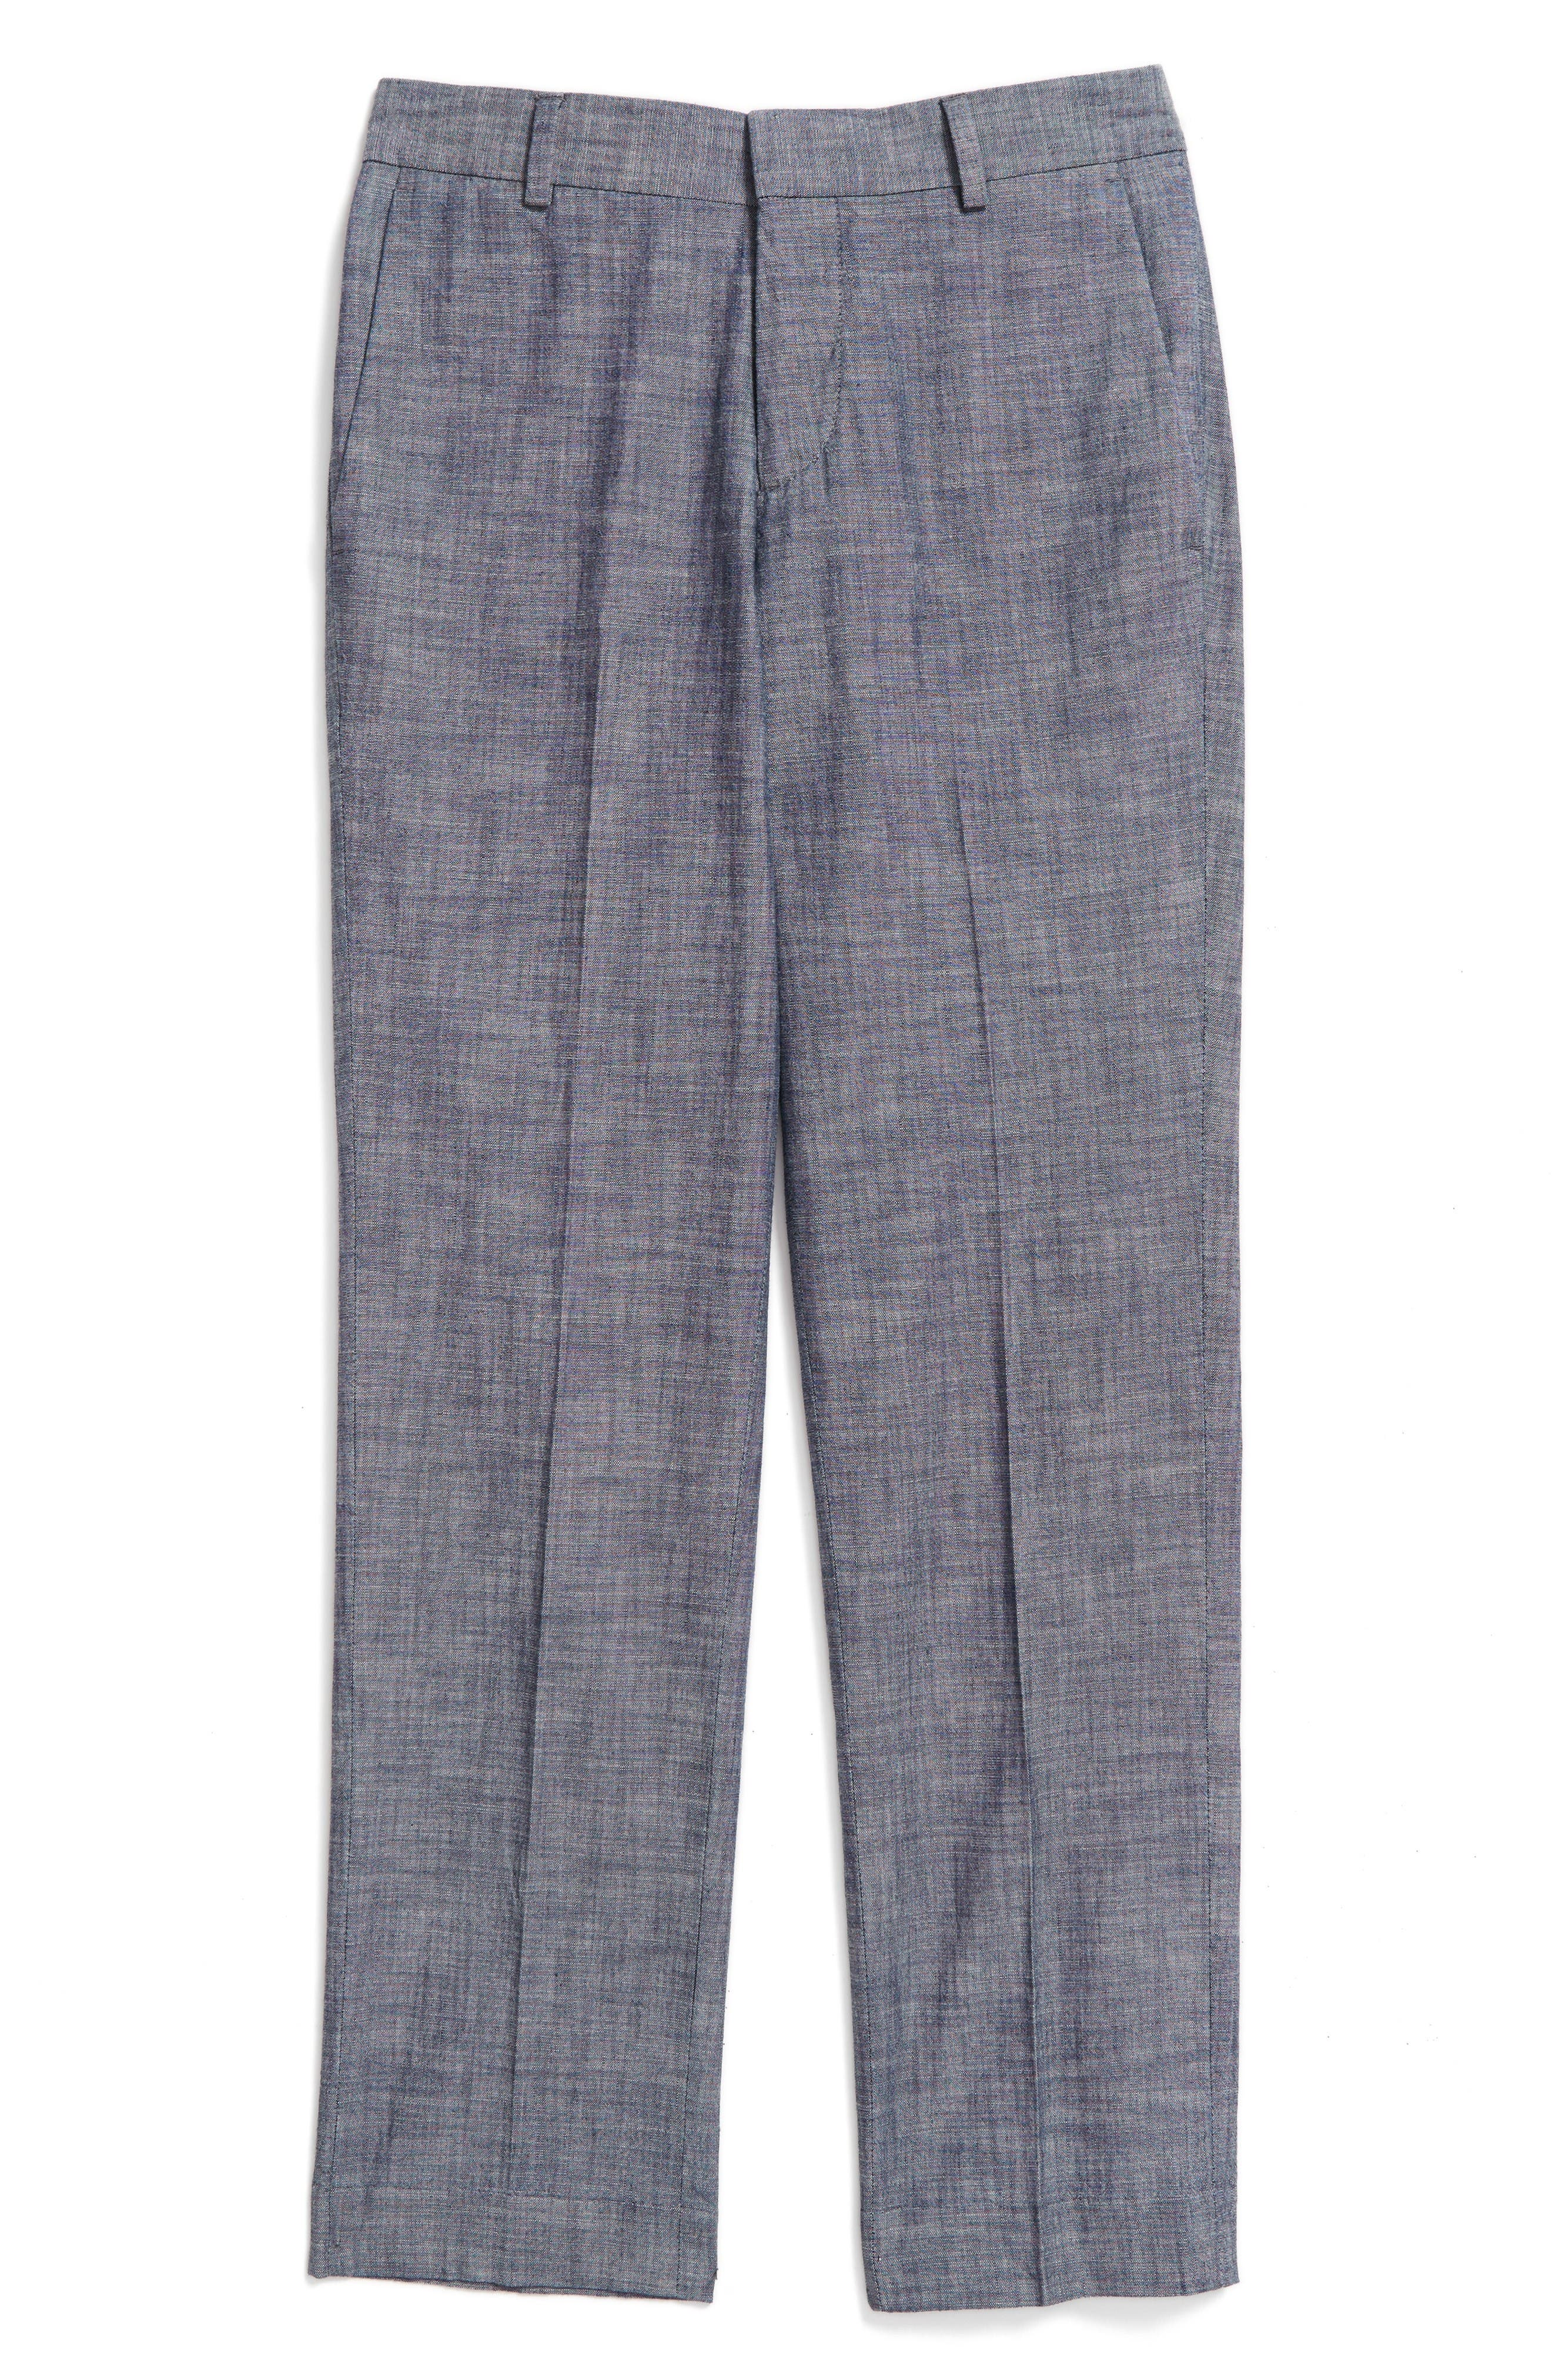 NORDSTROM Chambray Slim Fit Pants